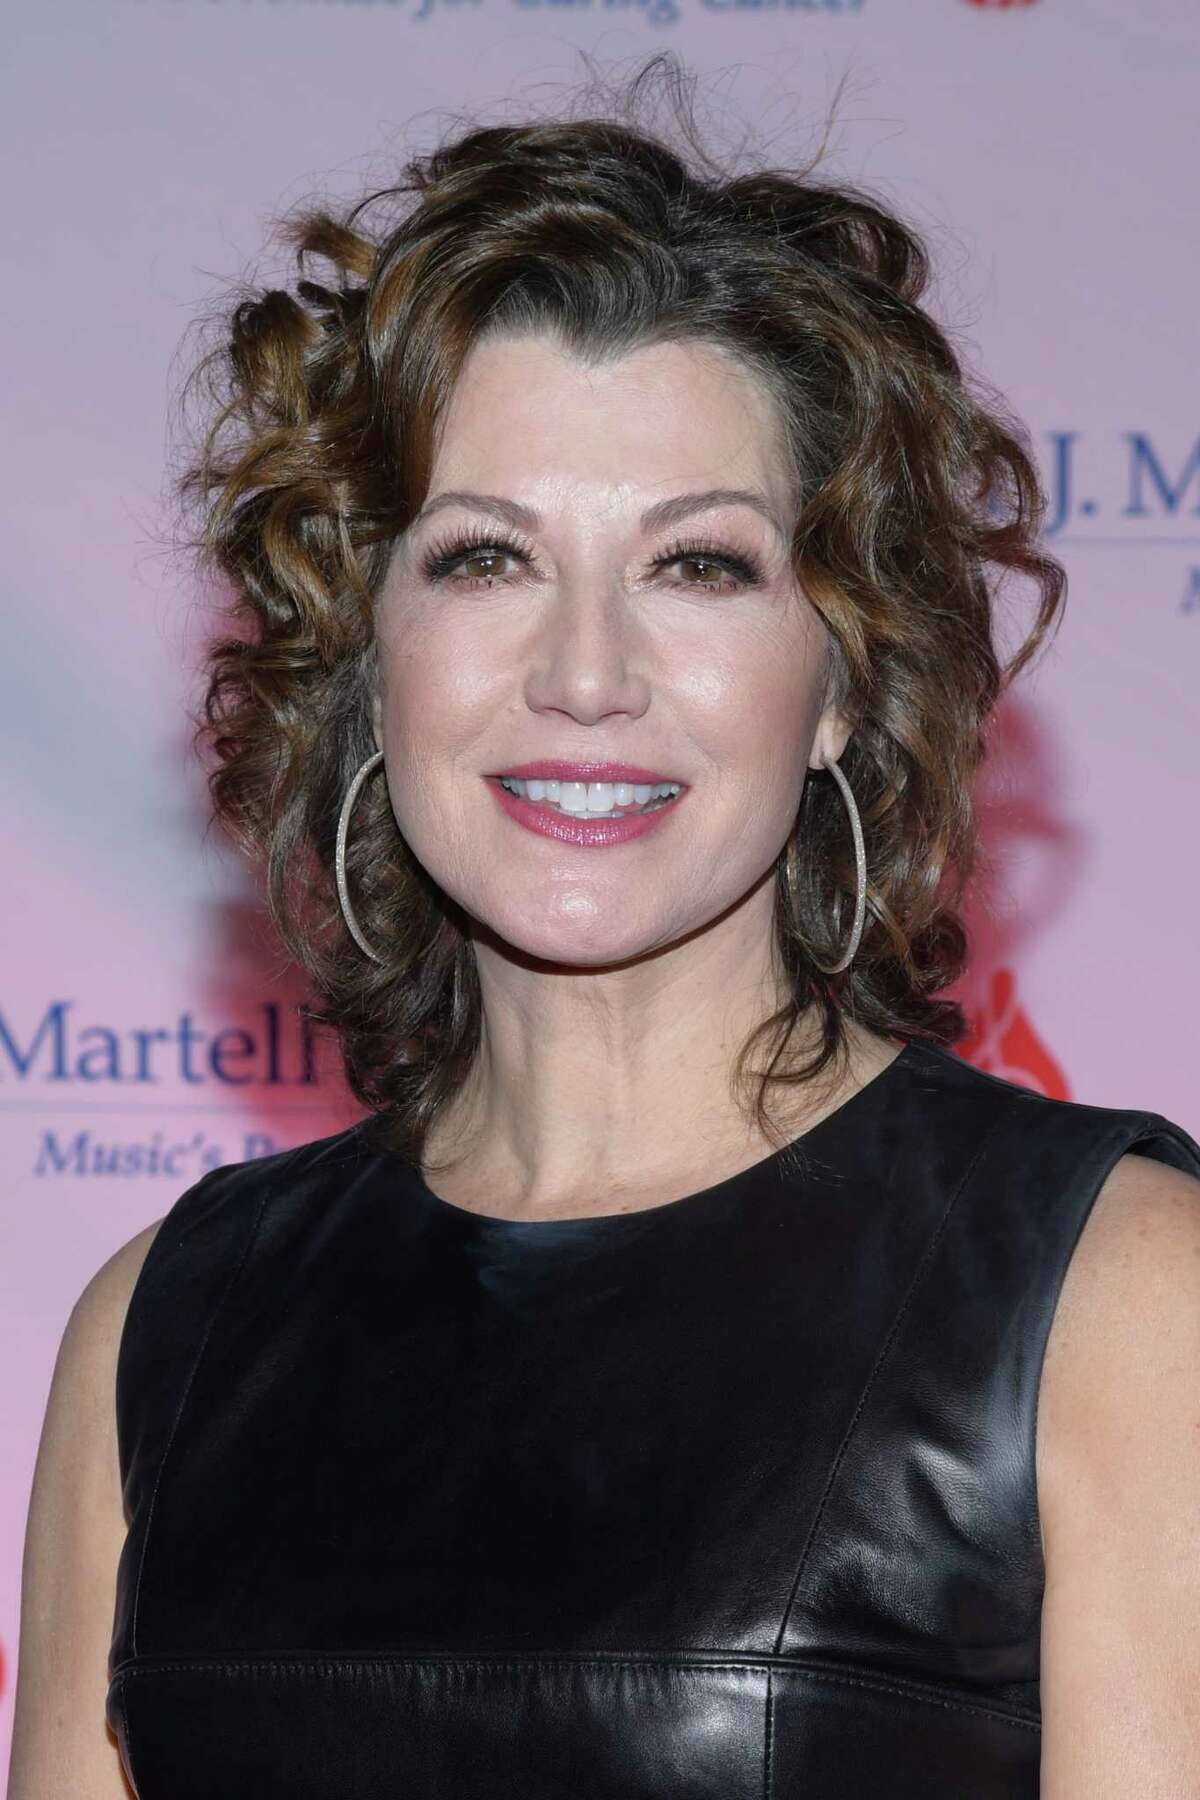 NASHVILLE, TENNESSEE - FEBRUARY 24: Amy Grant attends the 12th Annual T.J. Martell Foundation Nashville Gala at Omni Hotel on February 24, 2020 in Nashville, Tennessee. (Photo by Jason Kempin/Getty Images)